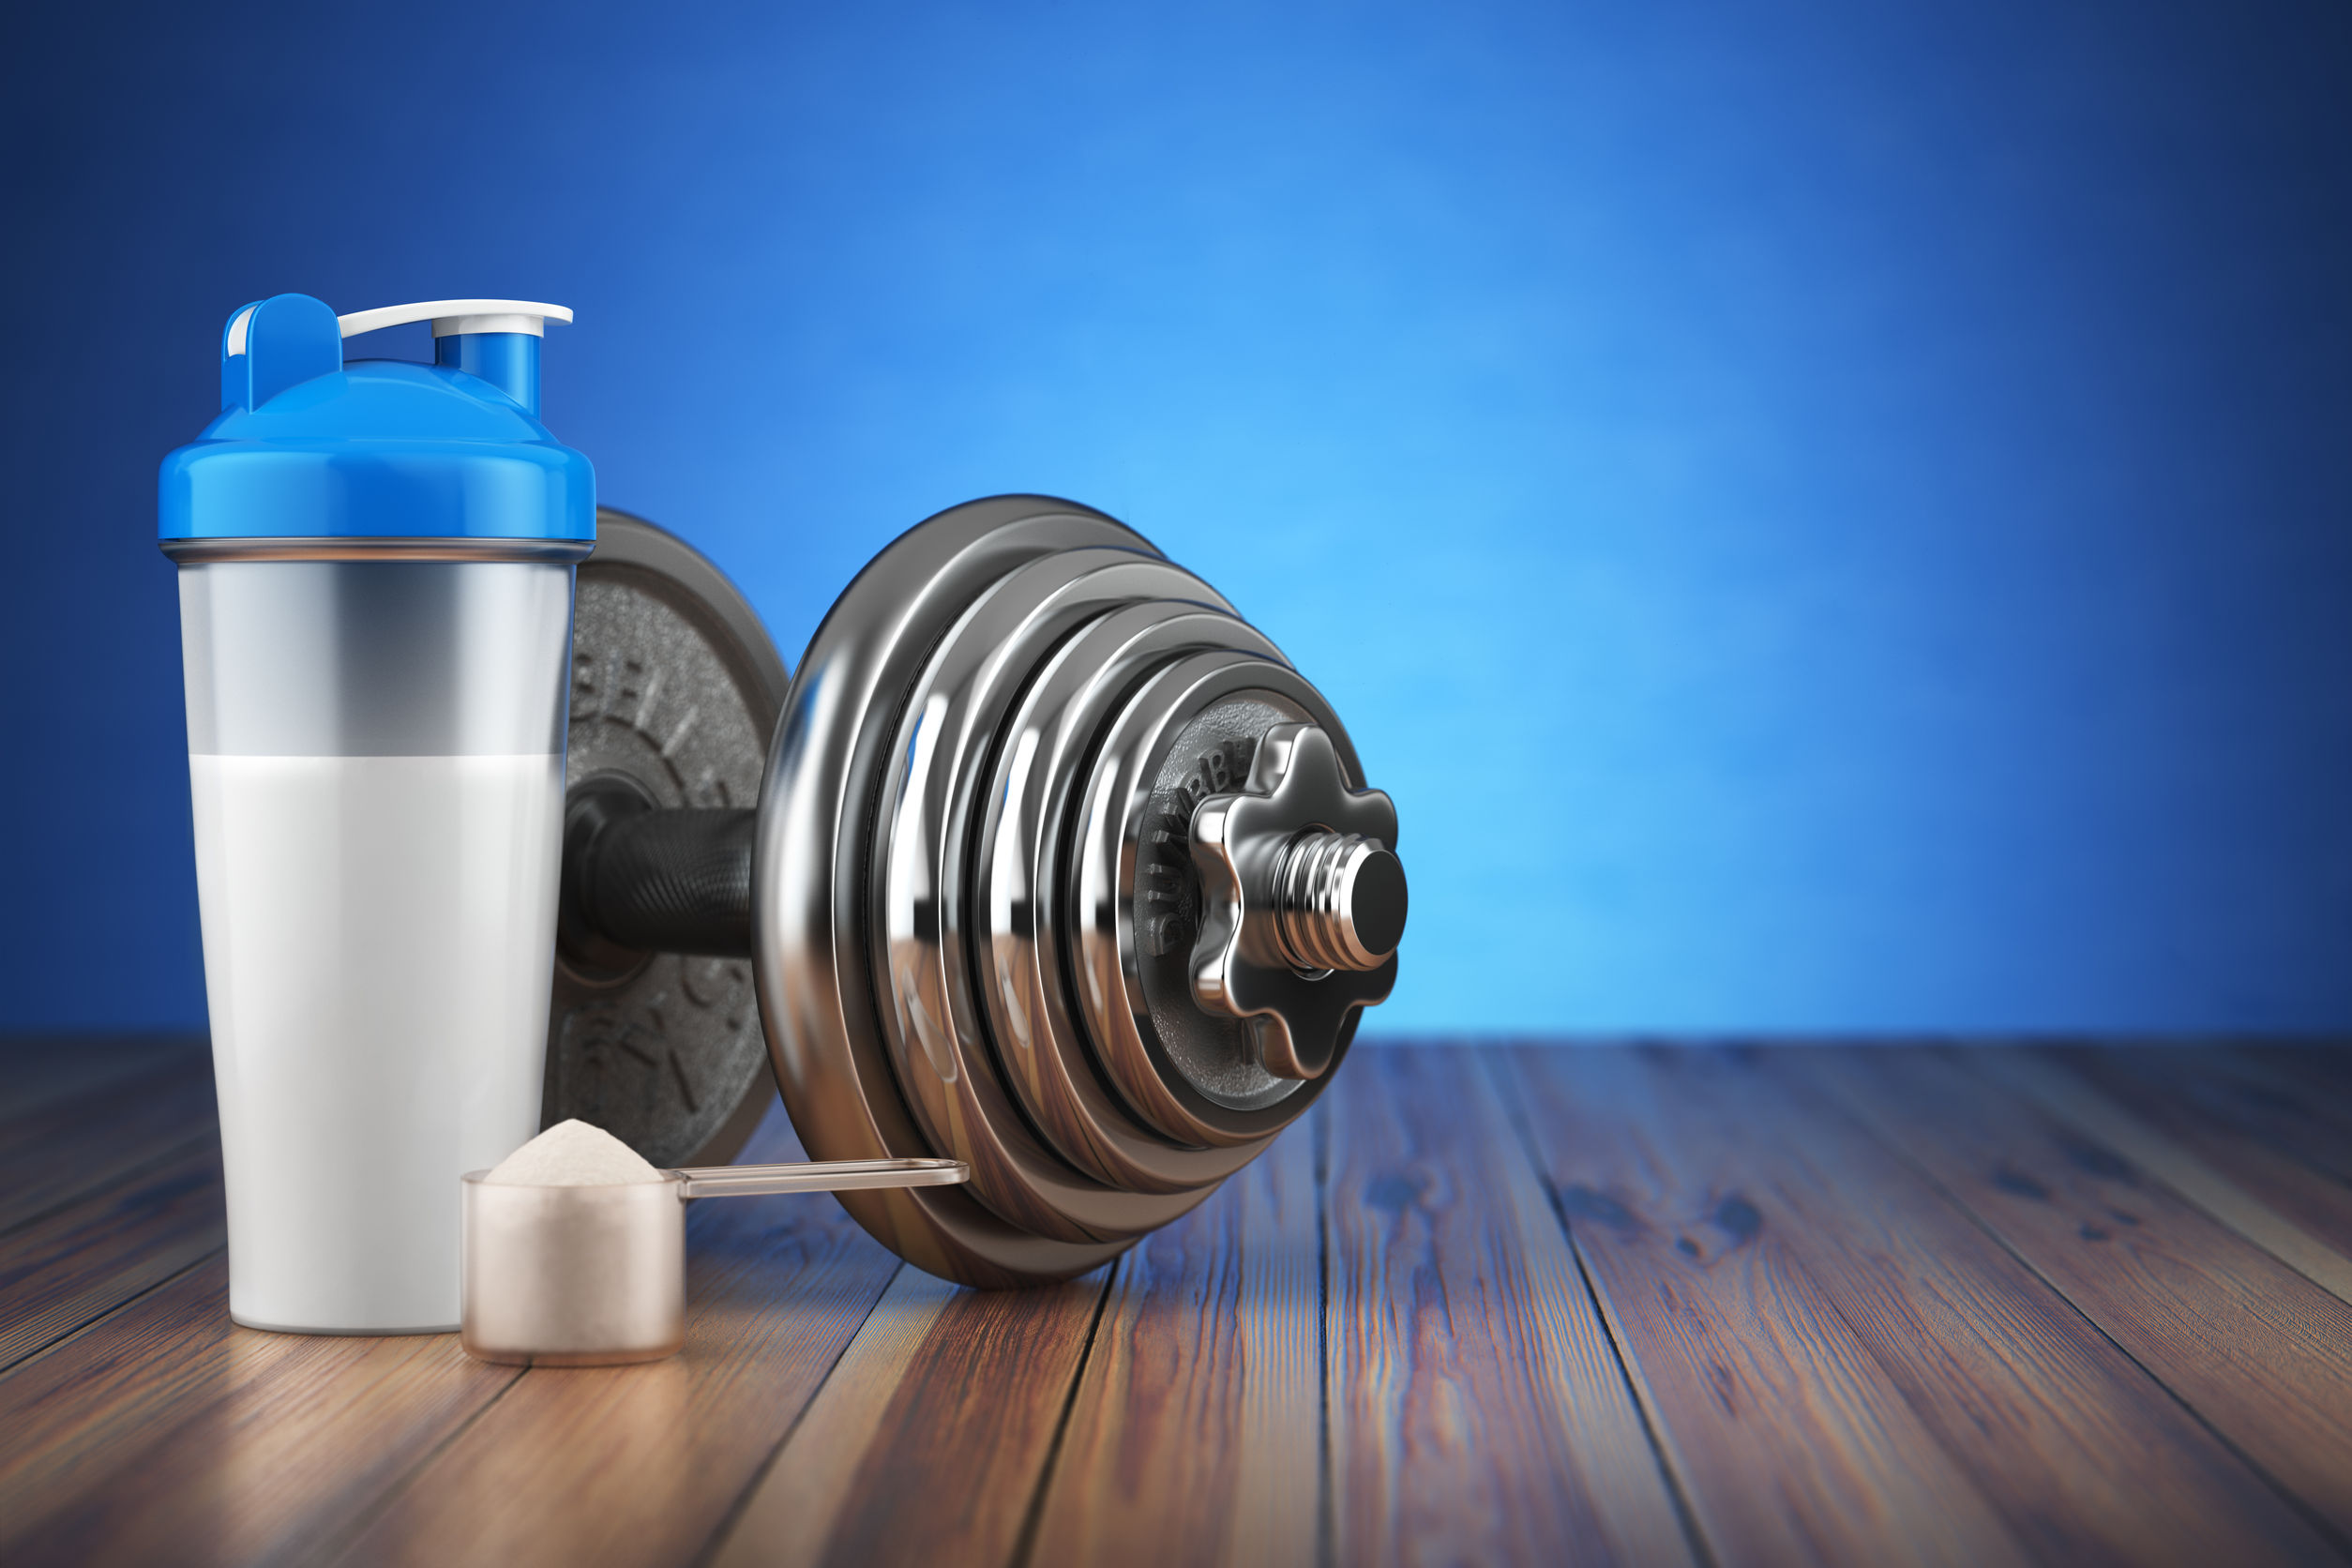 Best Protein Shaker 2021: Shopping Guide & Review